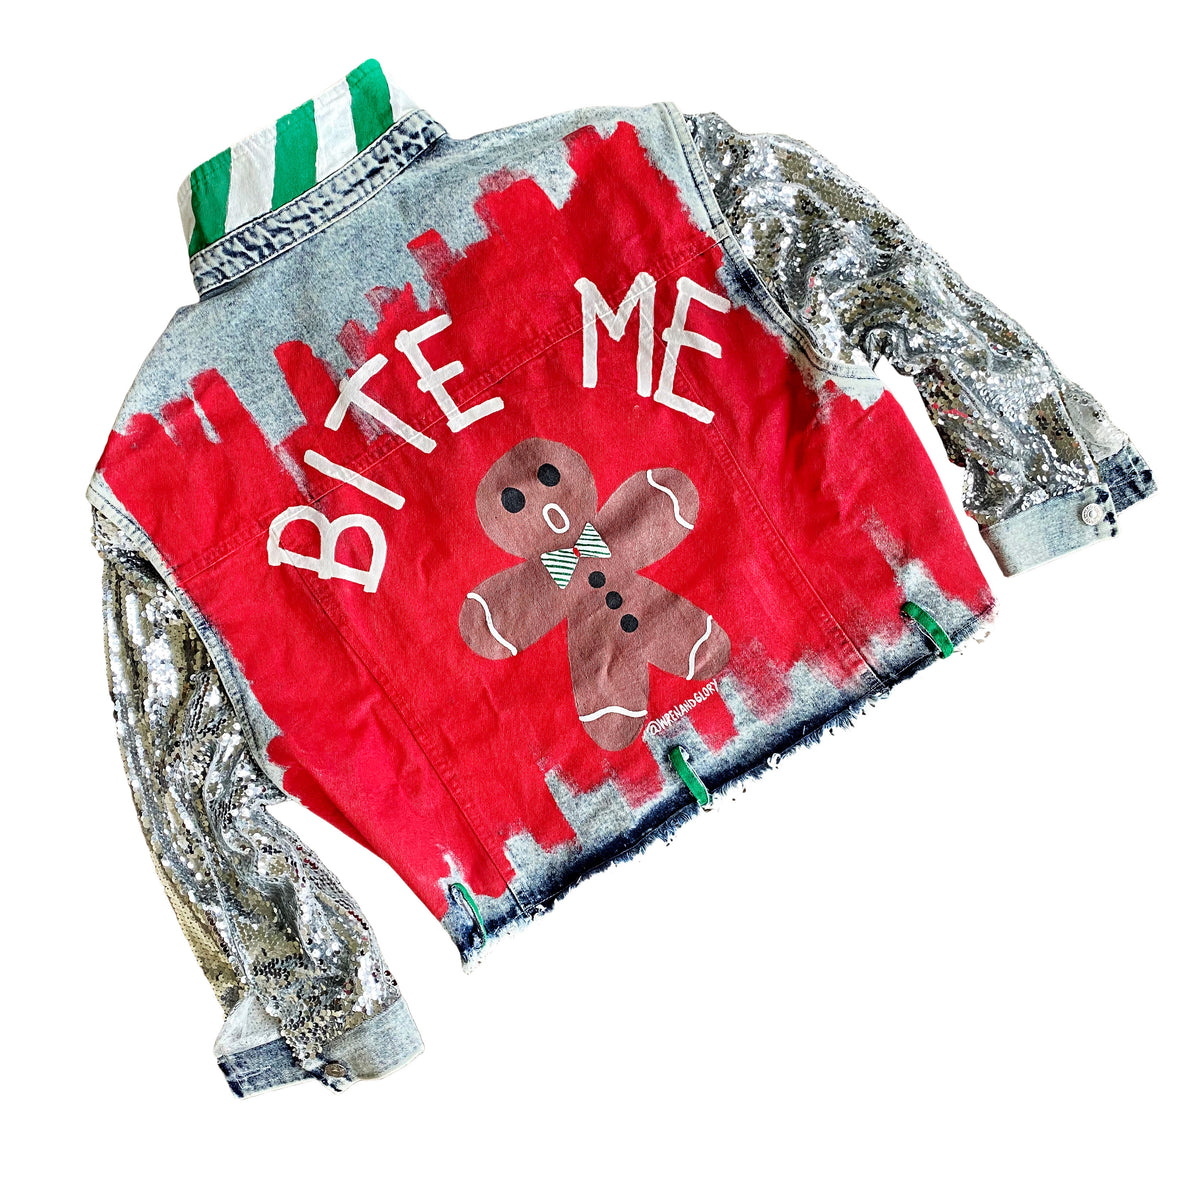 Blue denim jacket with sequined sleeves. Red base painted throughout, with gingerbread man on back, and BITE ME in semi circle above it. Signed @wrenandglory.